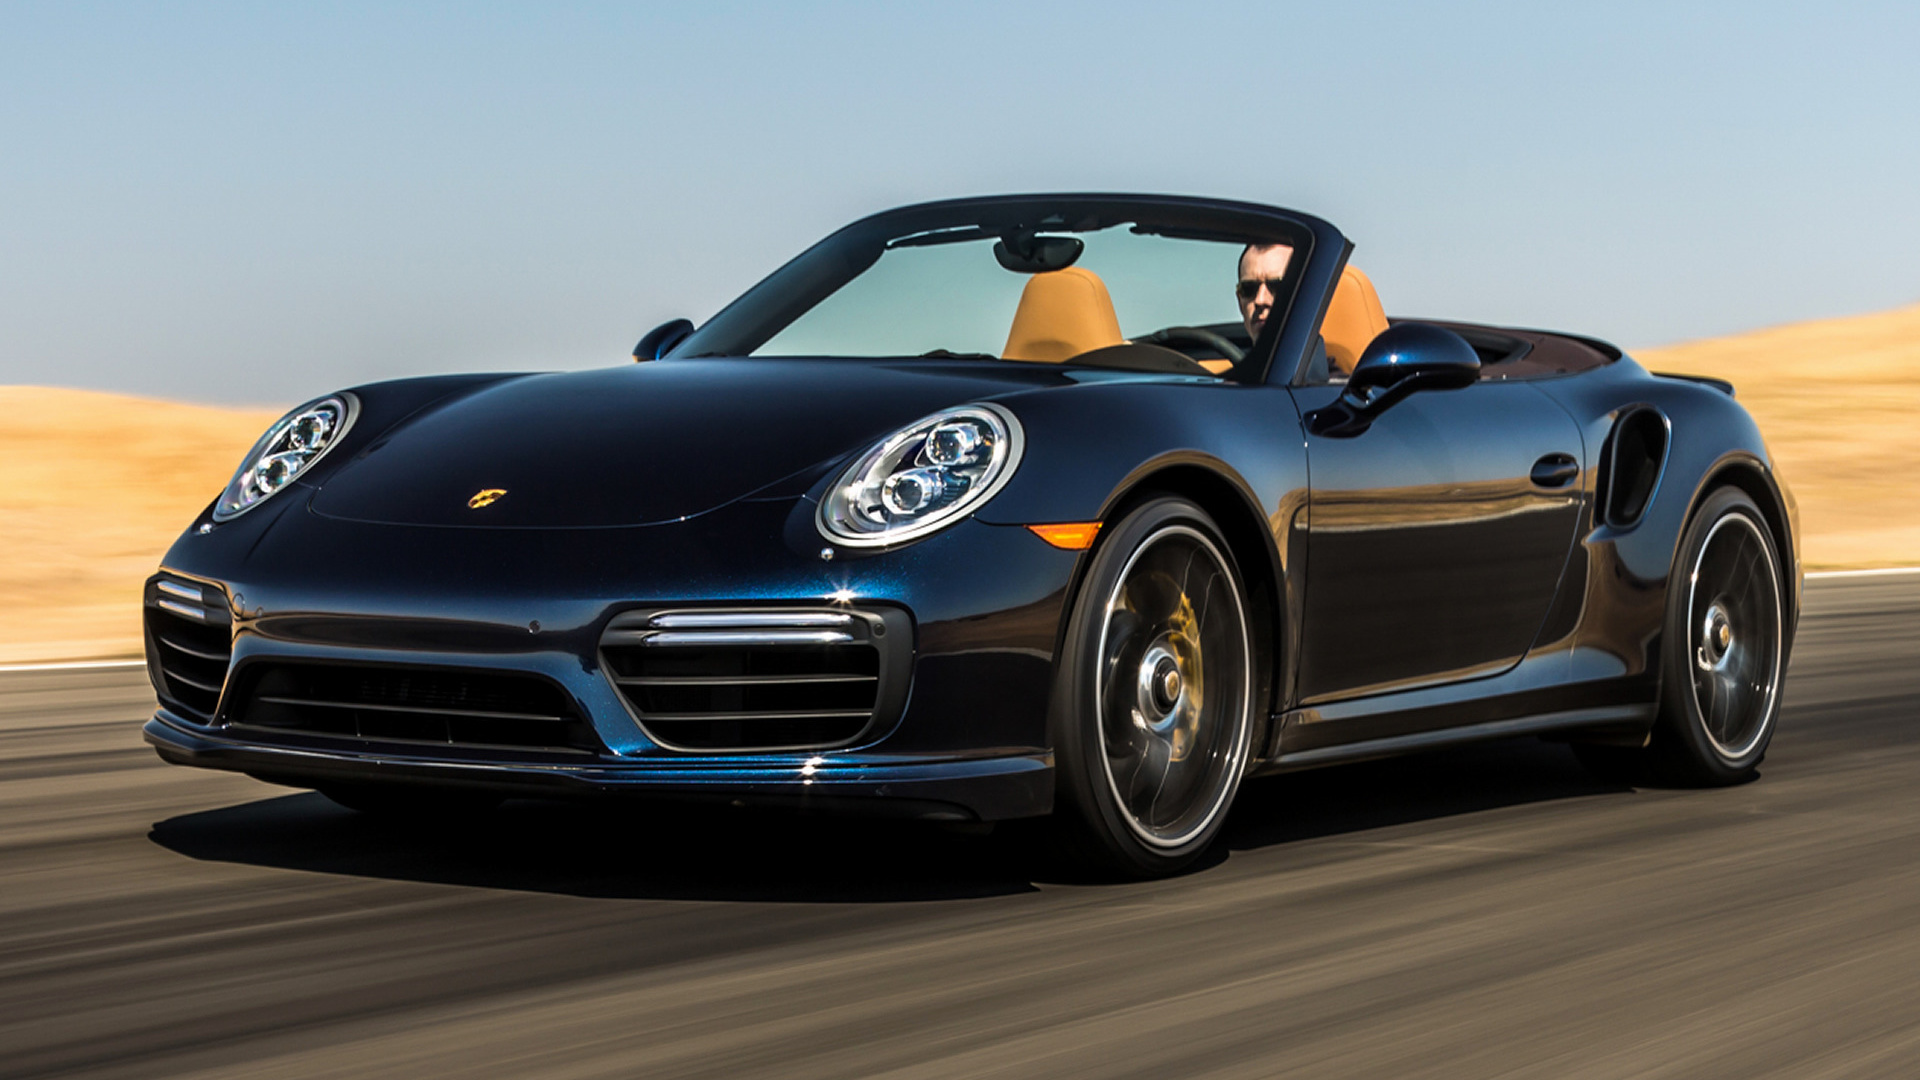 2017 Porsche 911 Turbo S Cabriolet US   Wallpapers and HD Images 1920x1080